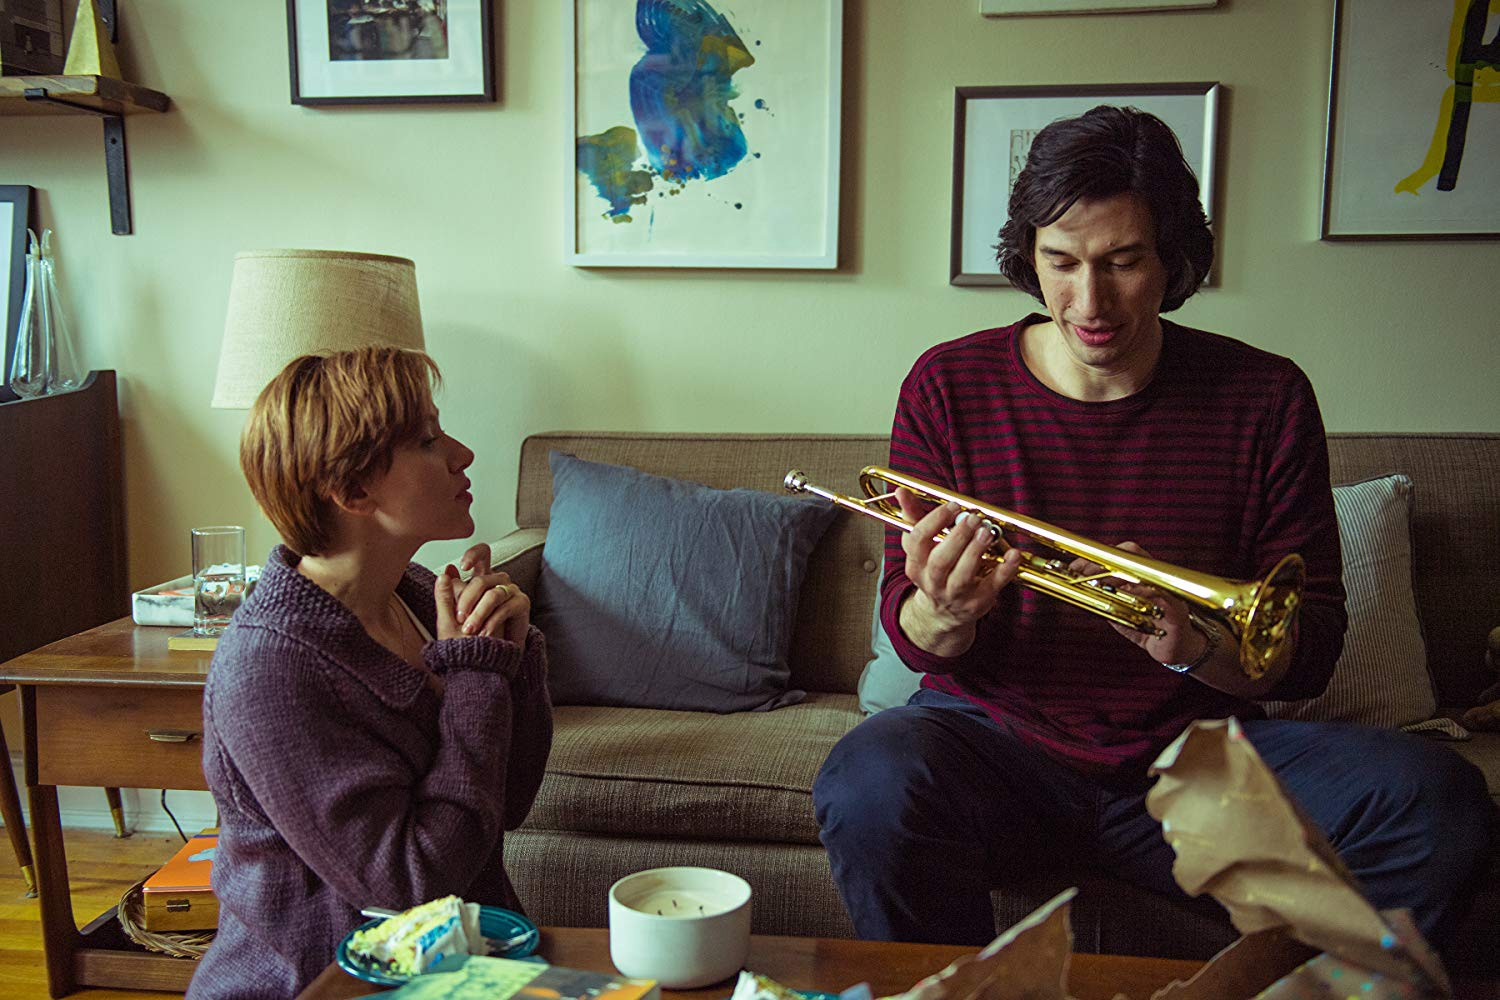 Nicole gives Charlie a trumpet